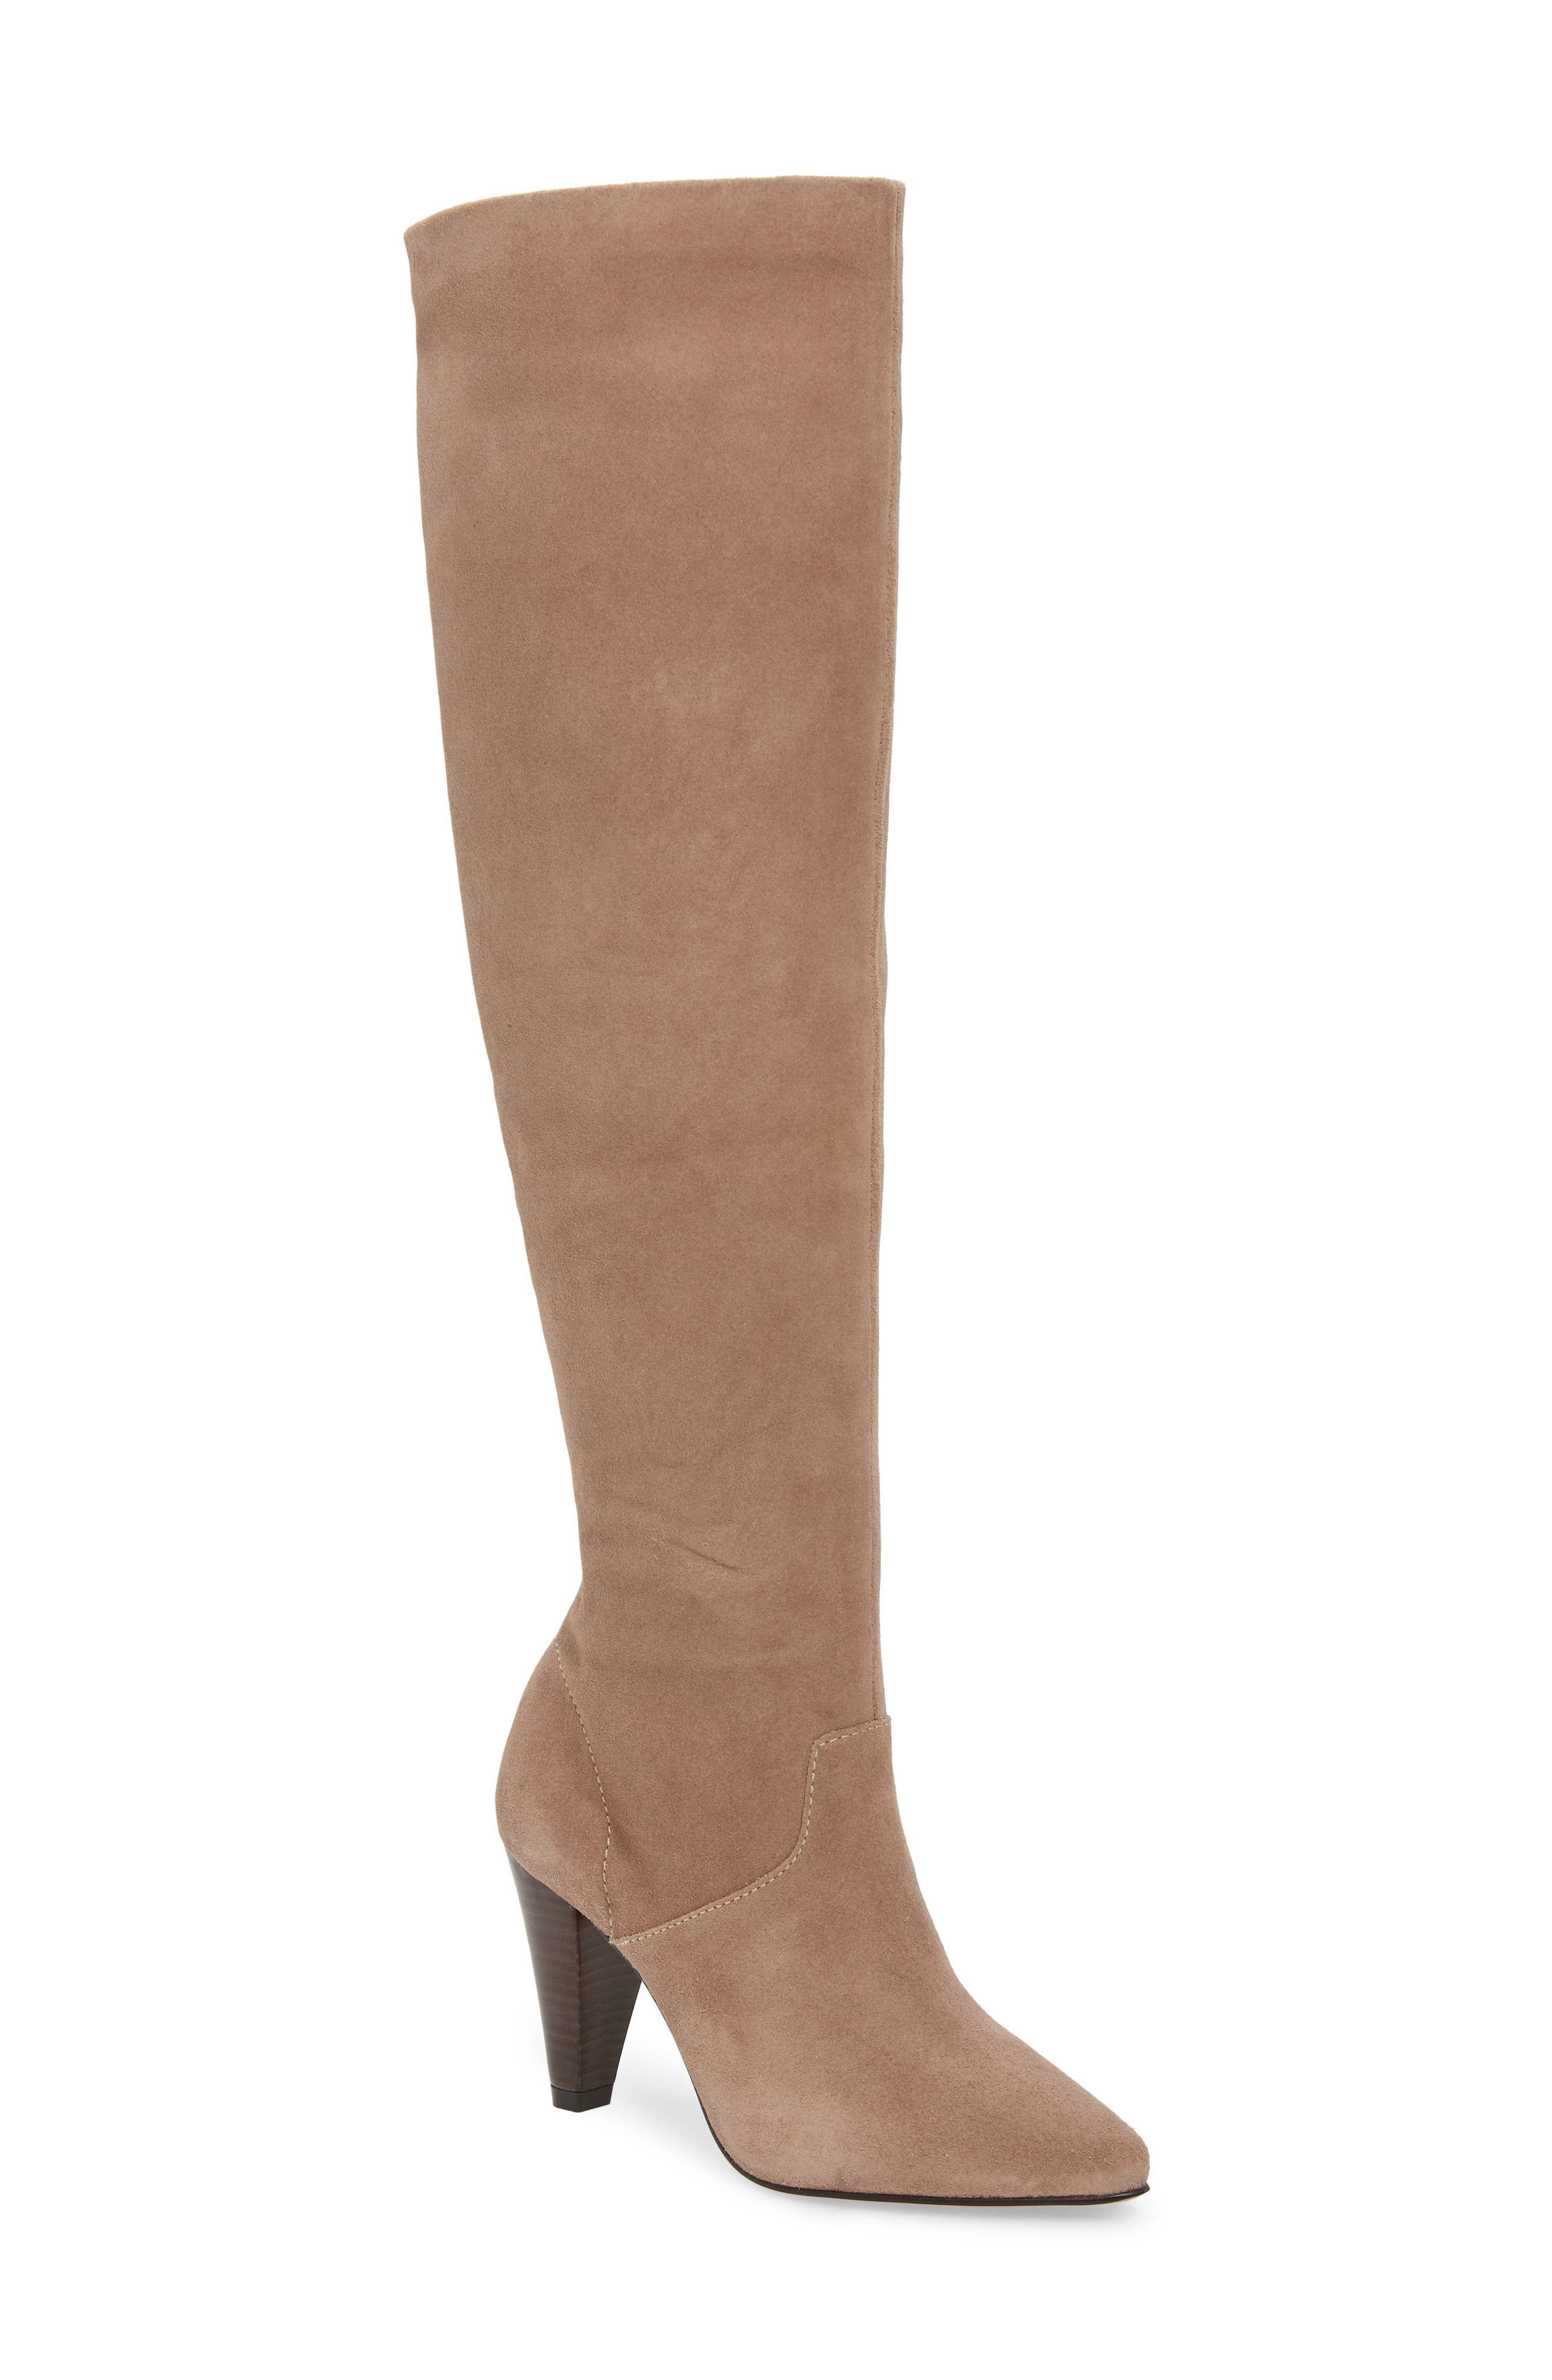 LUST FOR LIFE California Over The Knee Boot in Taupe Suede